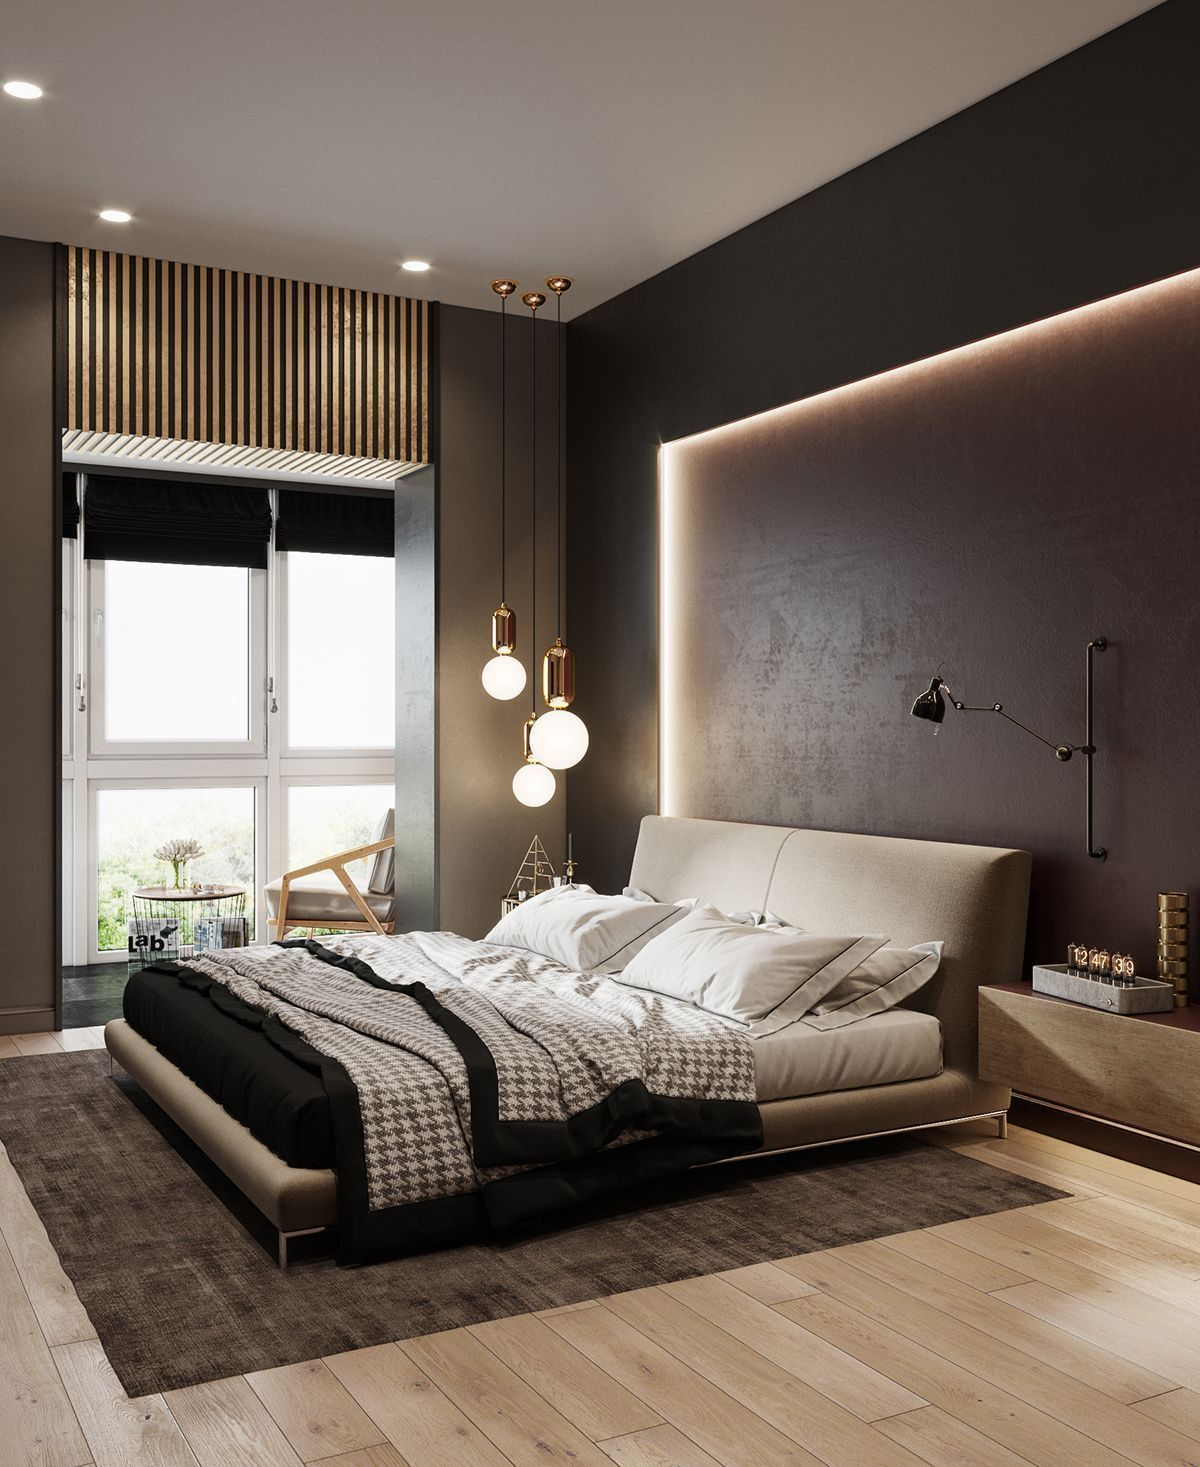 Best Mid Century Modern Wall Lamps To Die For Modern Bedroom 400 x 300